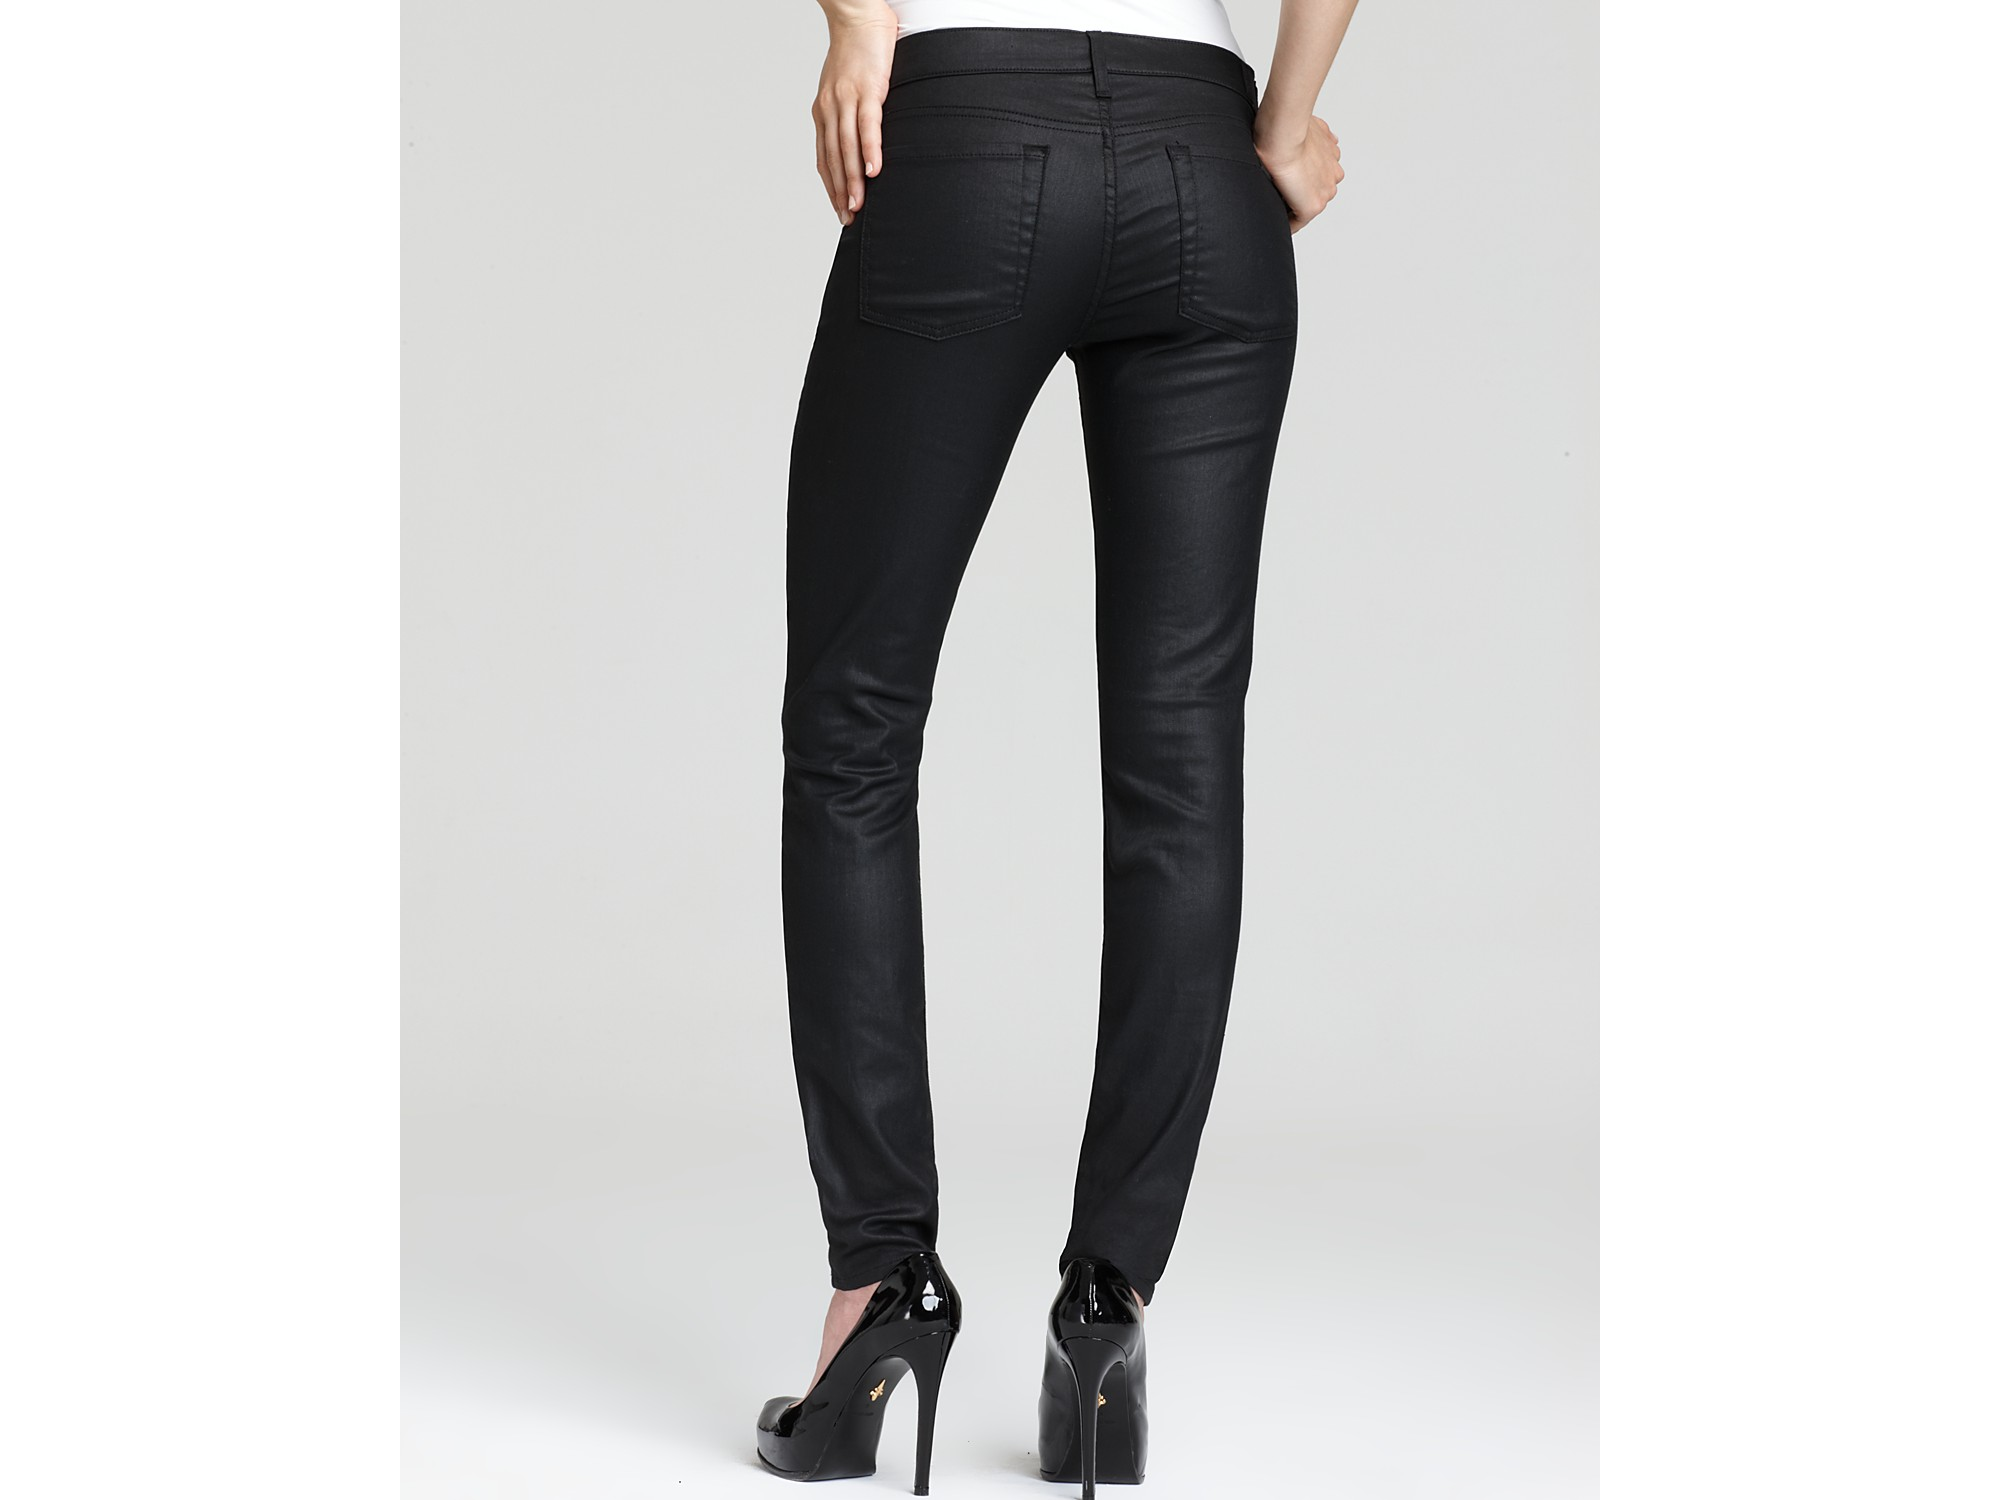 7 for all mankind Coated Featherweight Skinny Jeans in Black | Lyst